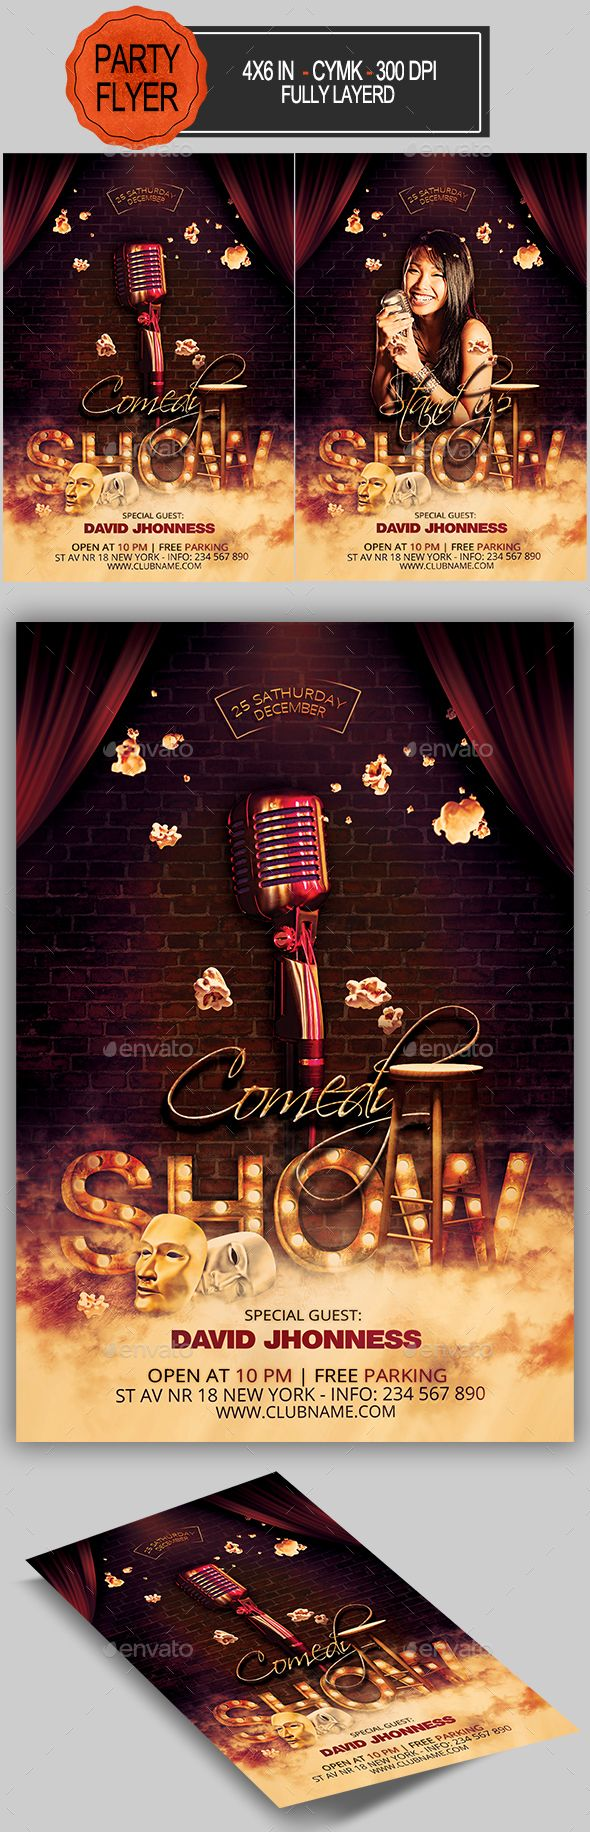 Comedy Show Flyer Template PSD